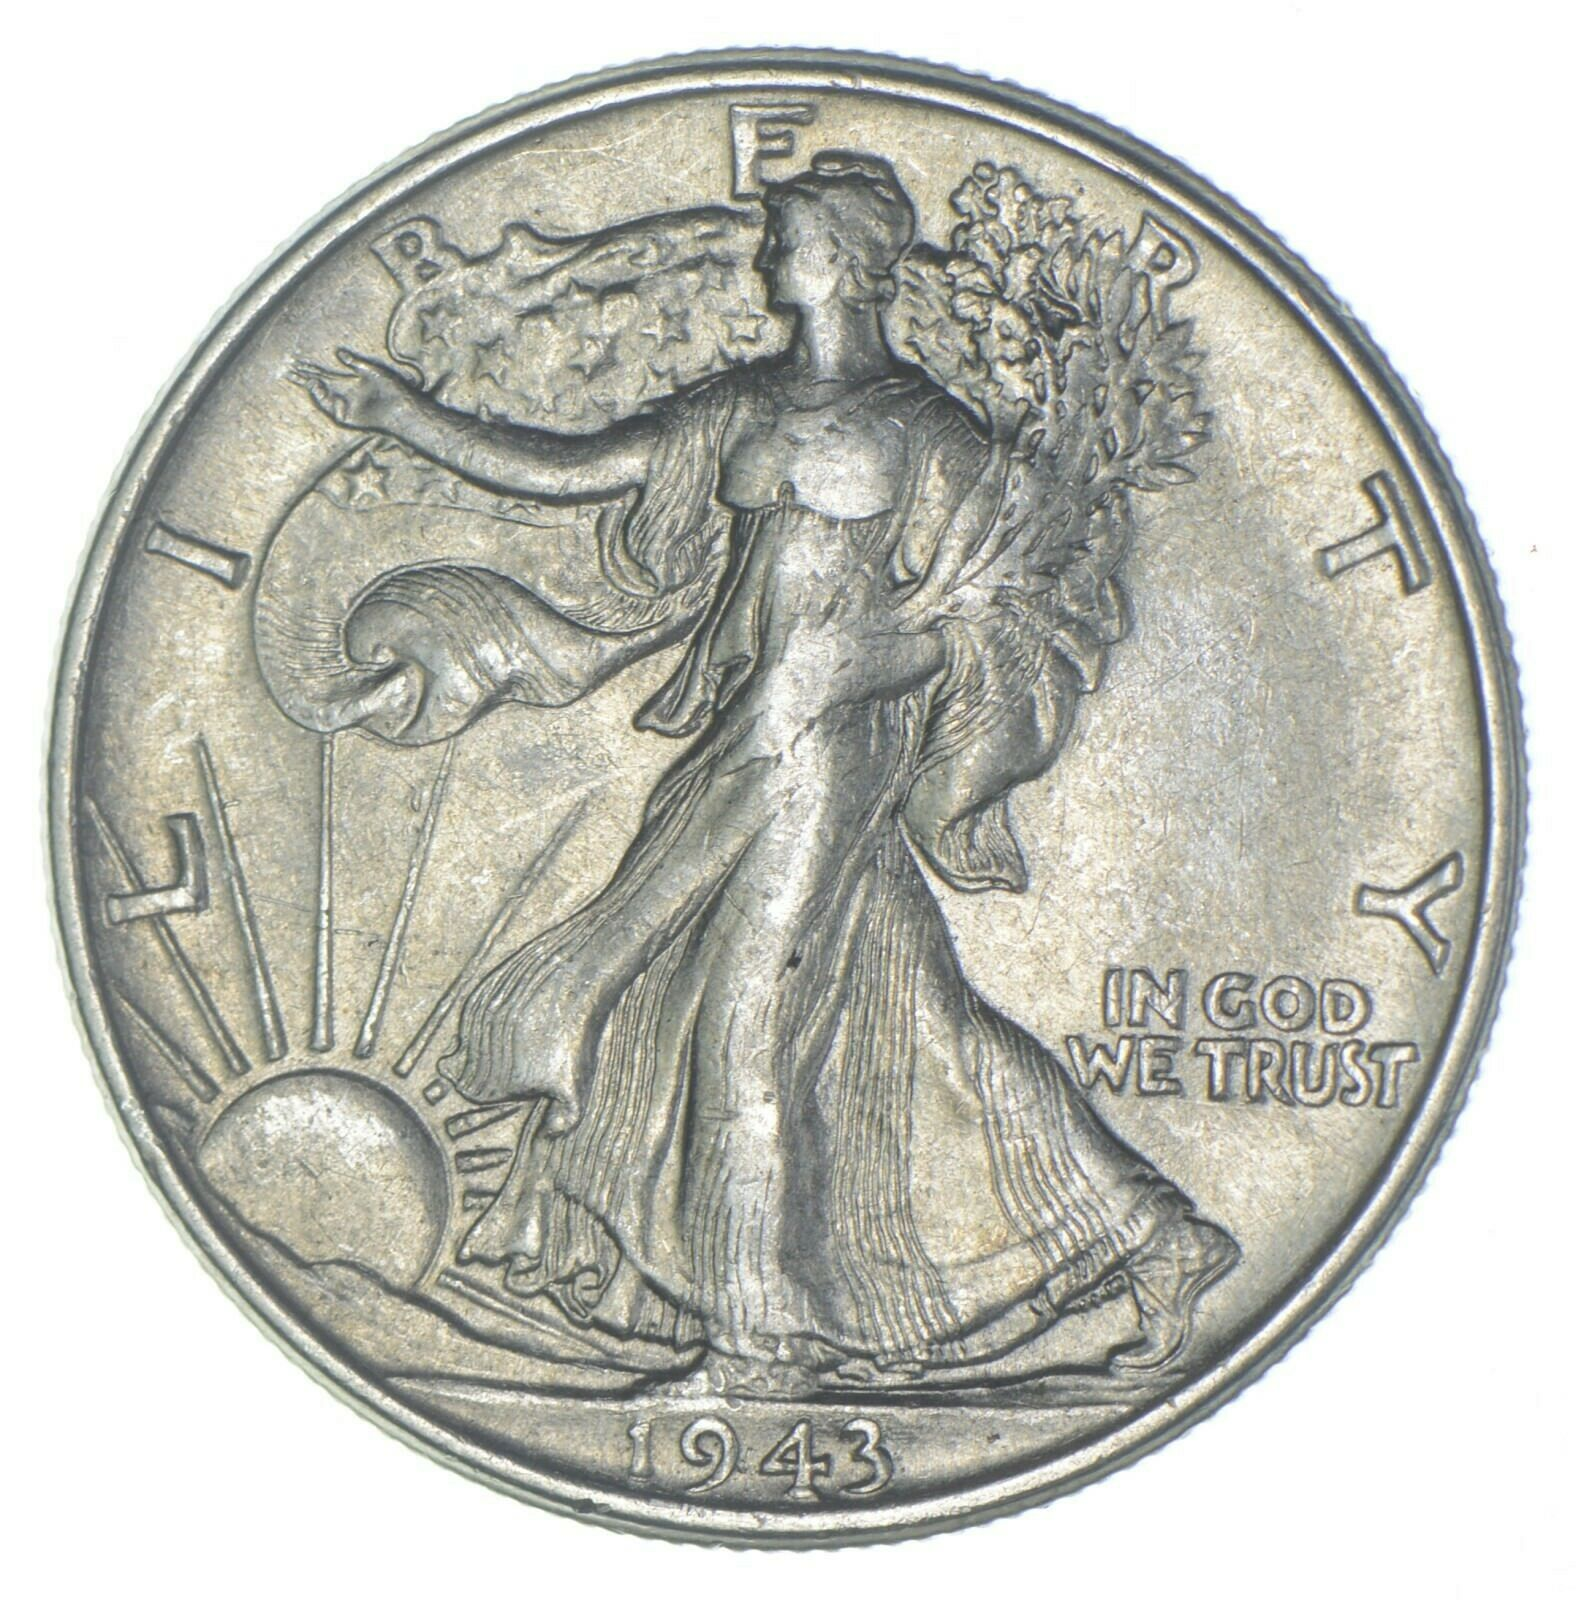 AU/Unc - 1943 Walking Liberty Silver Half Dollar - Better 126 - $0.06